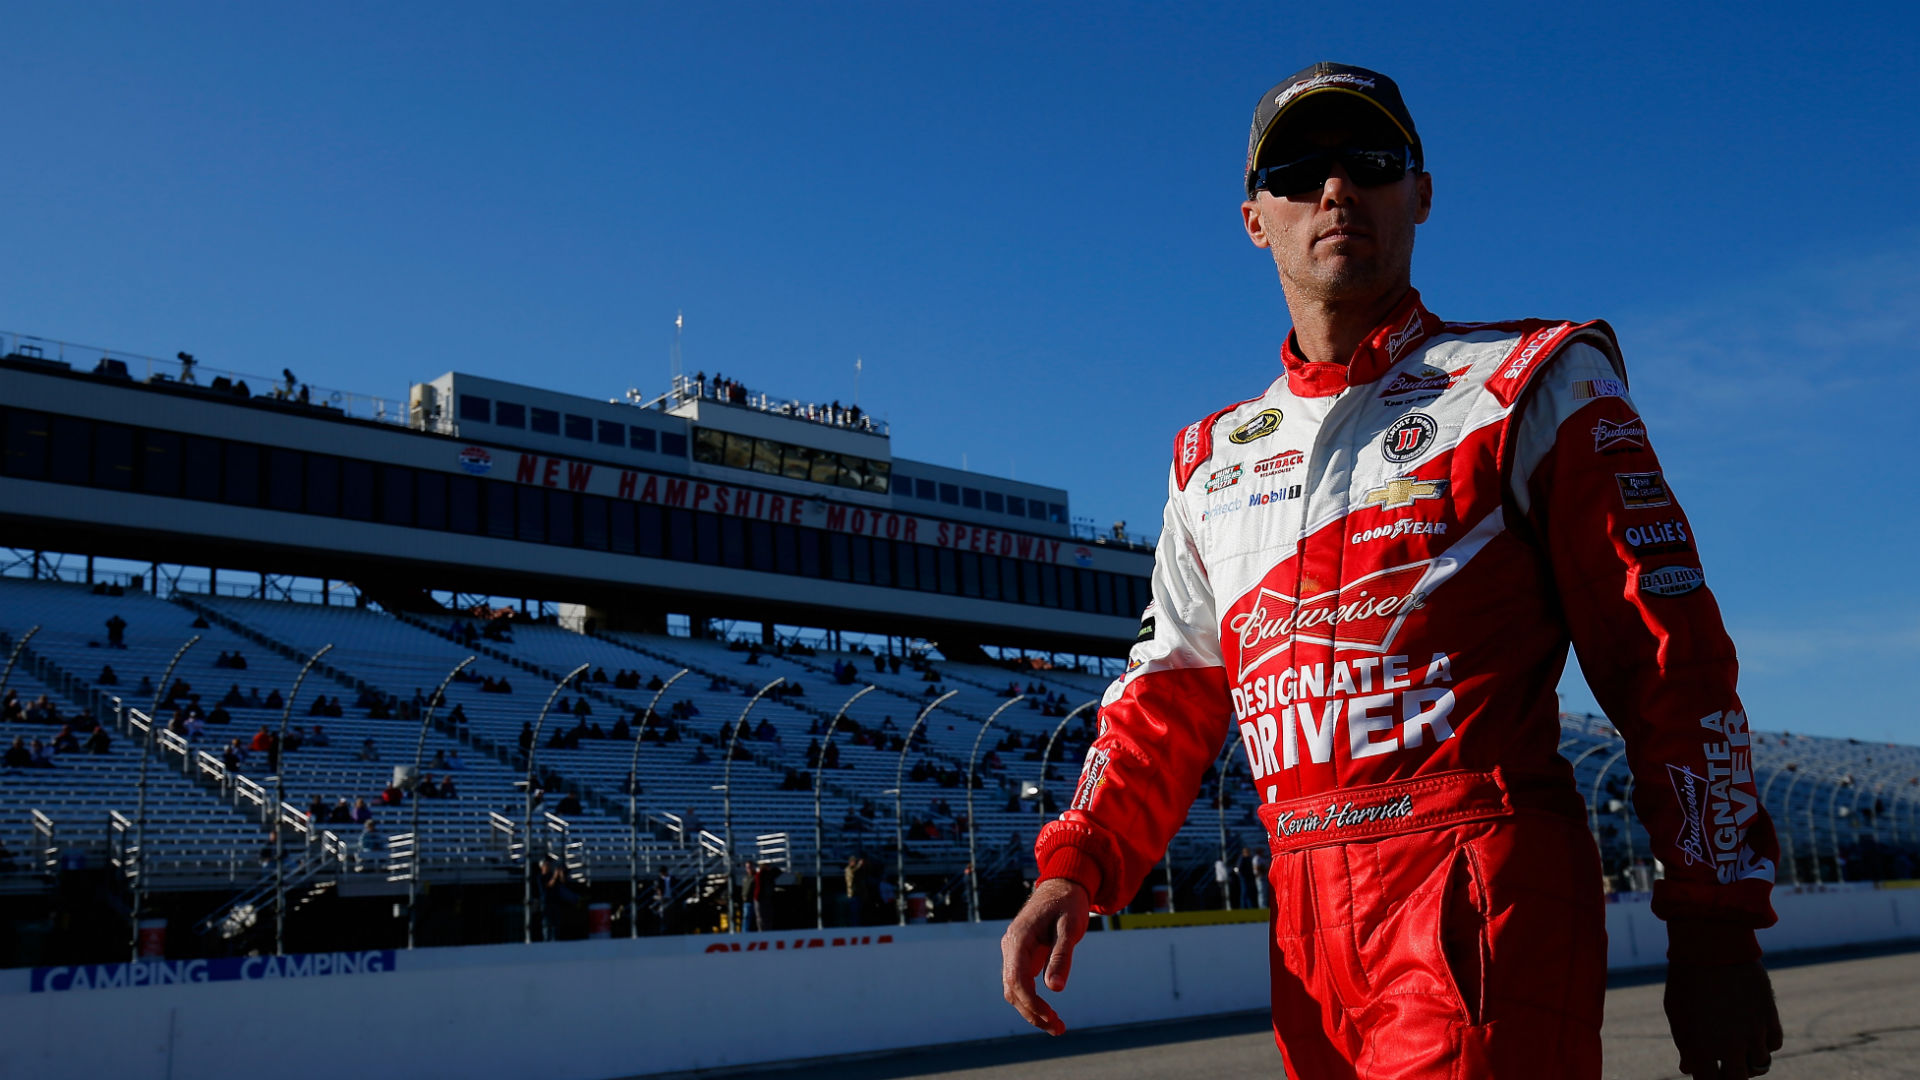 kevin-harvick-092014-getty-ftr.jpg